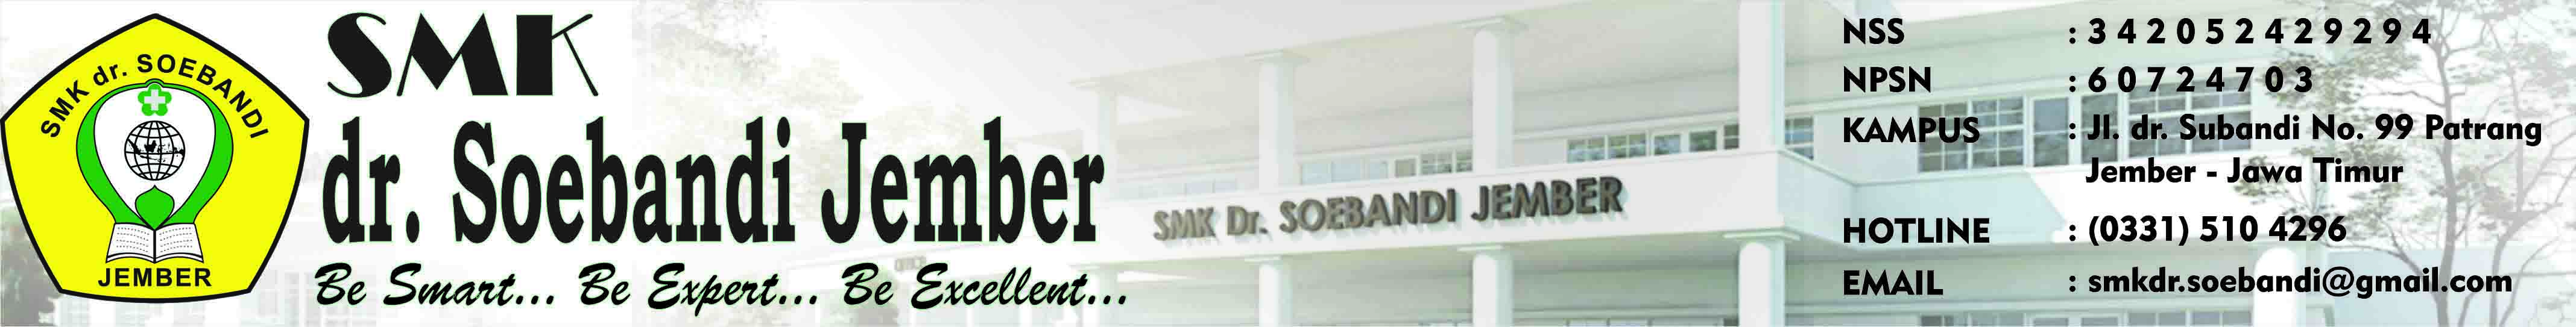 SMK Farmasi dr. Soebandi Jember | Be Smart, Be Expert, Be Excellent